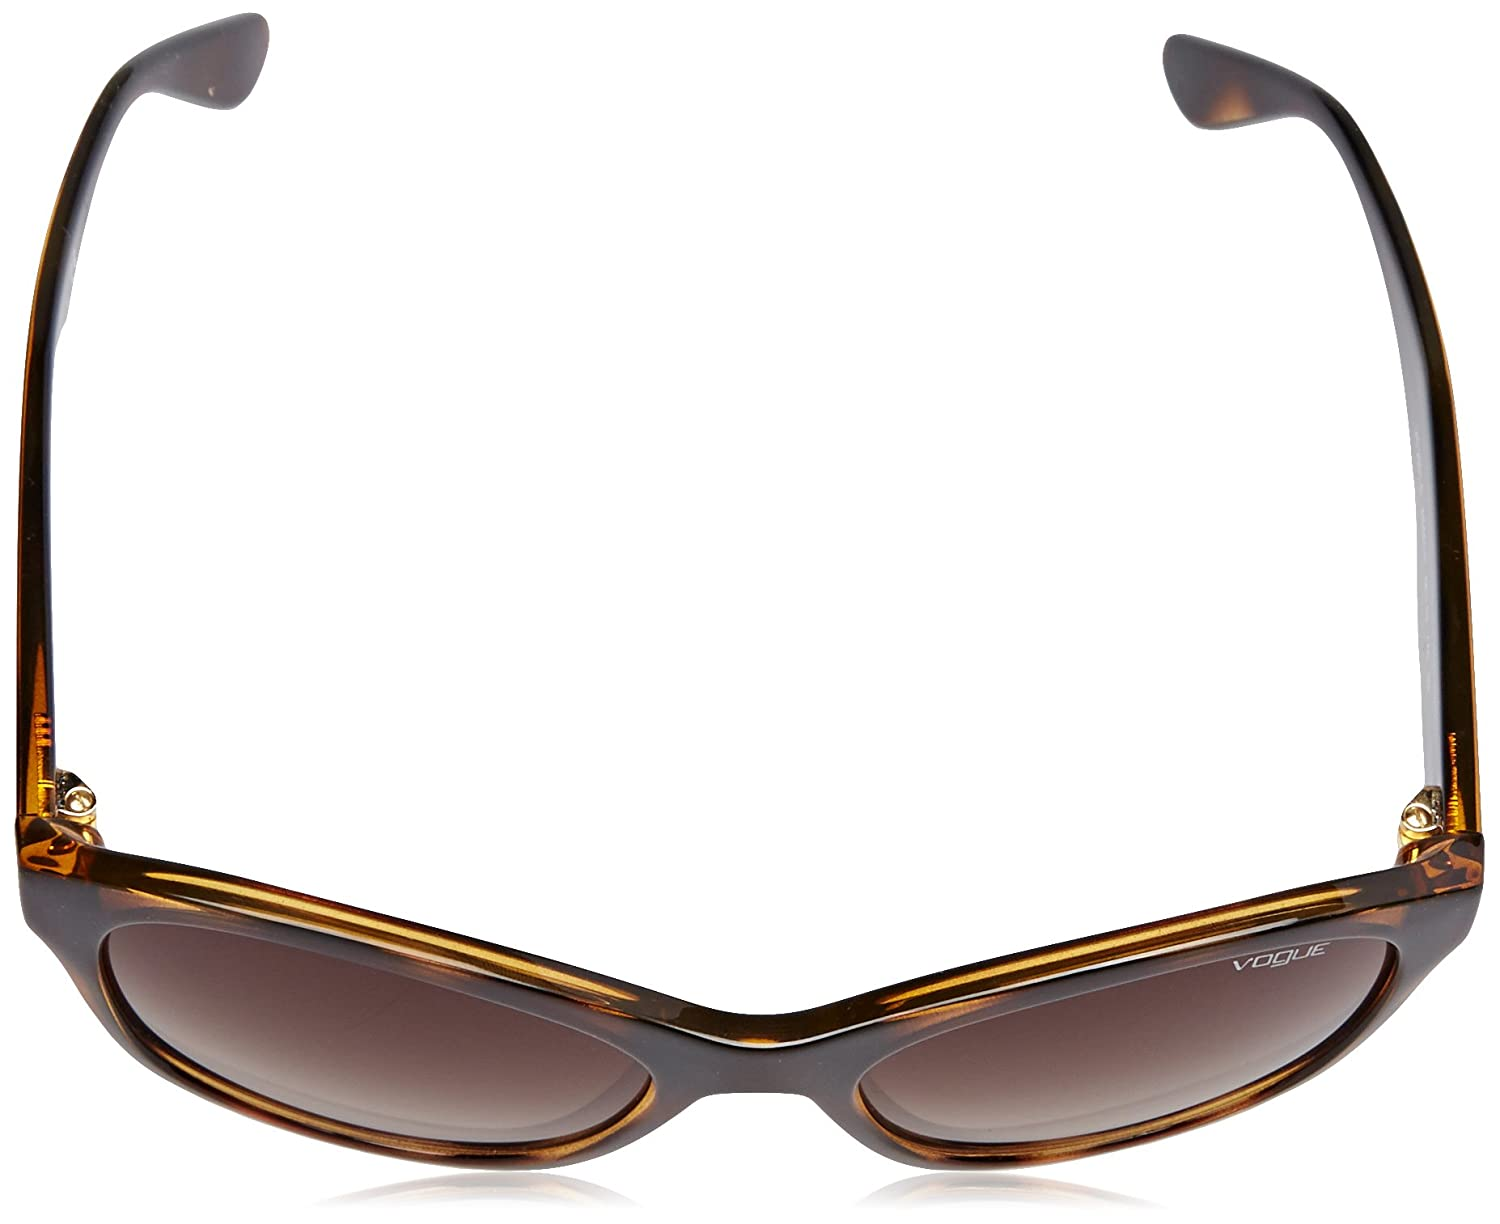 Vogue W65613 Brown 2991S Sunglasses Lens Category 3